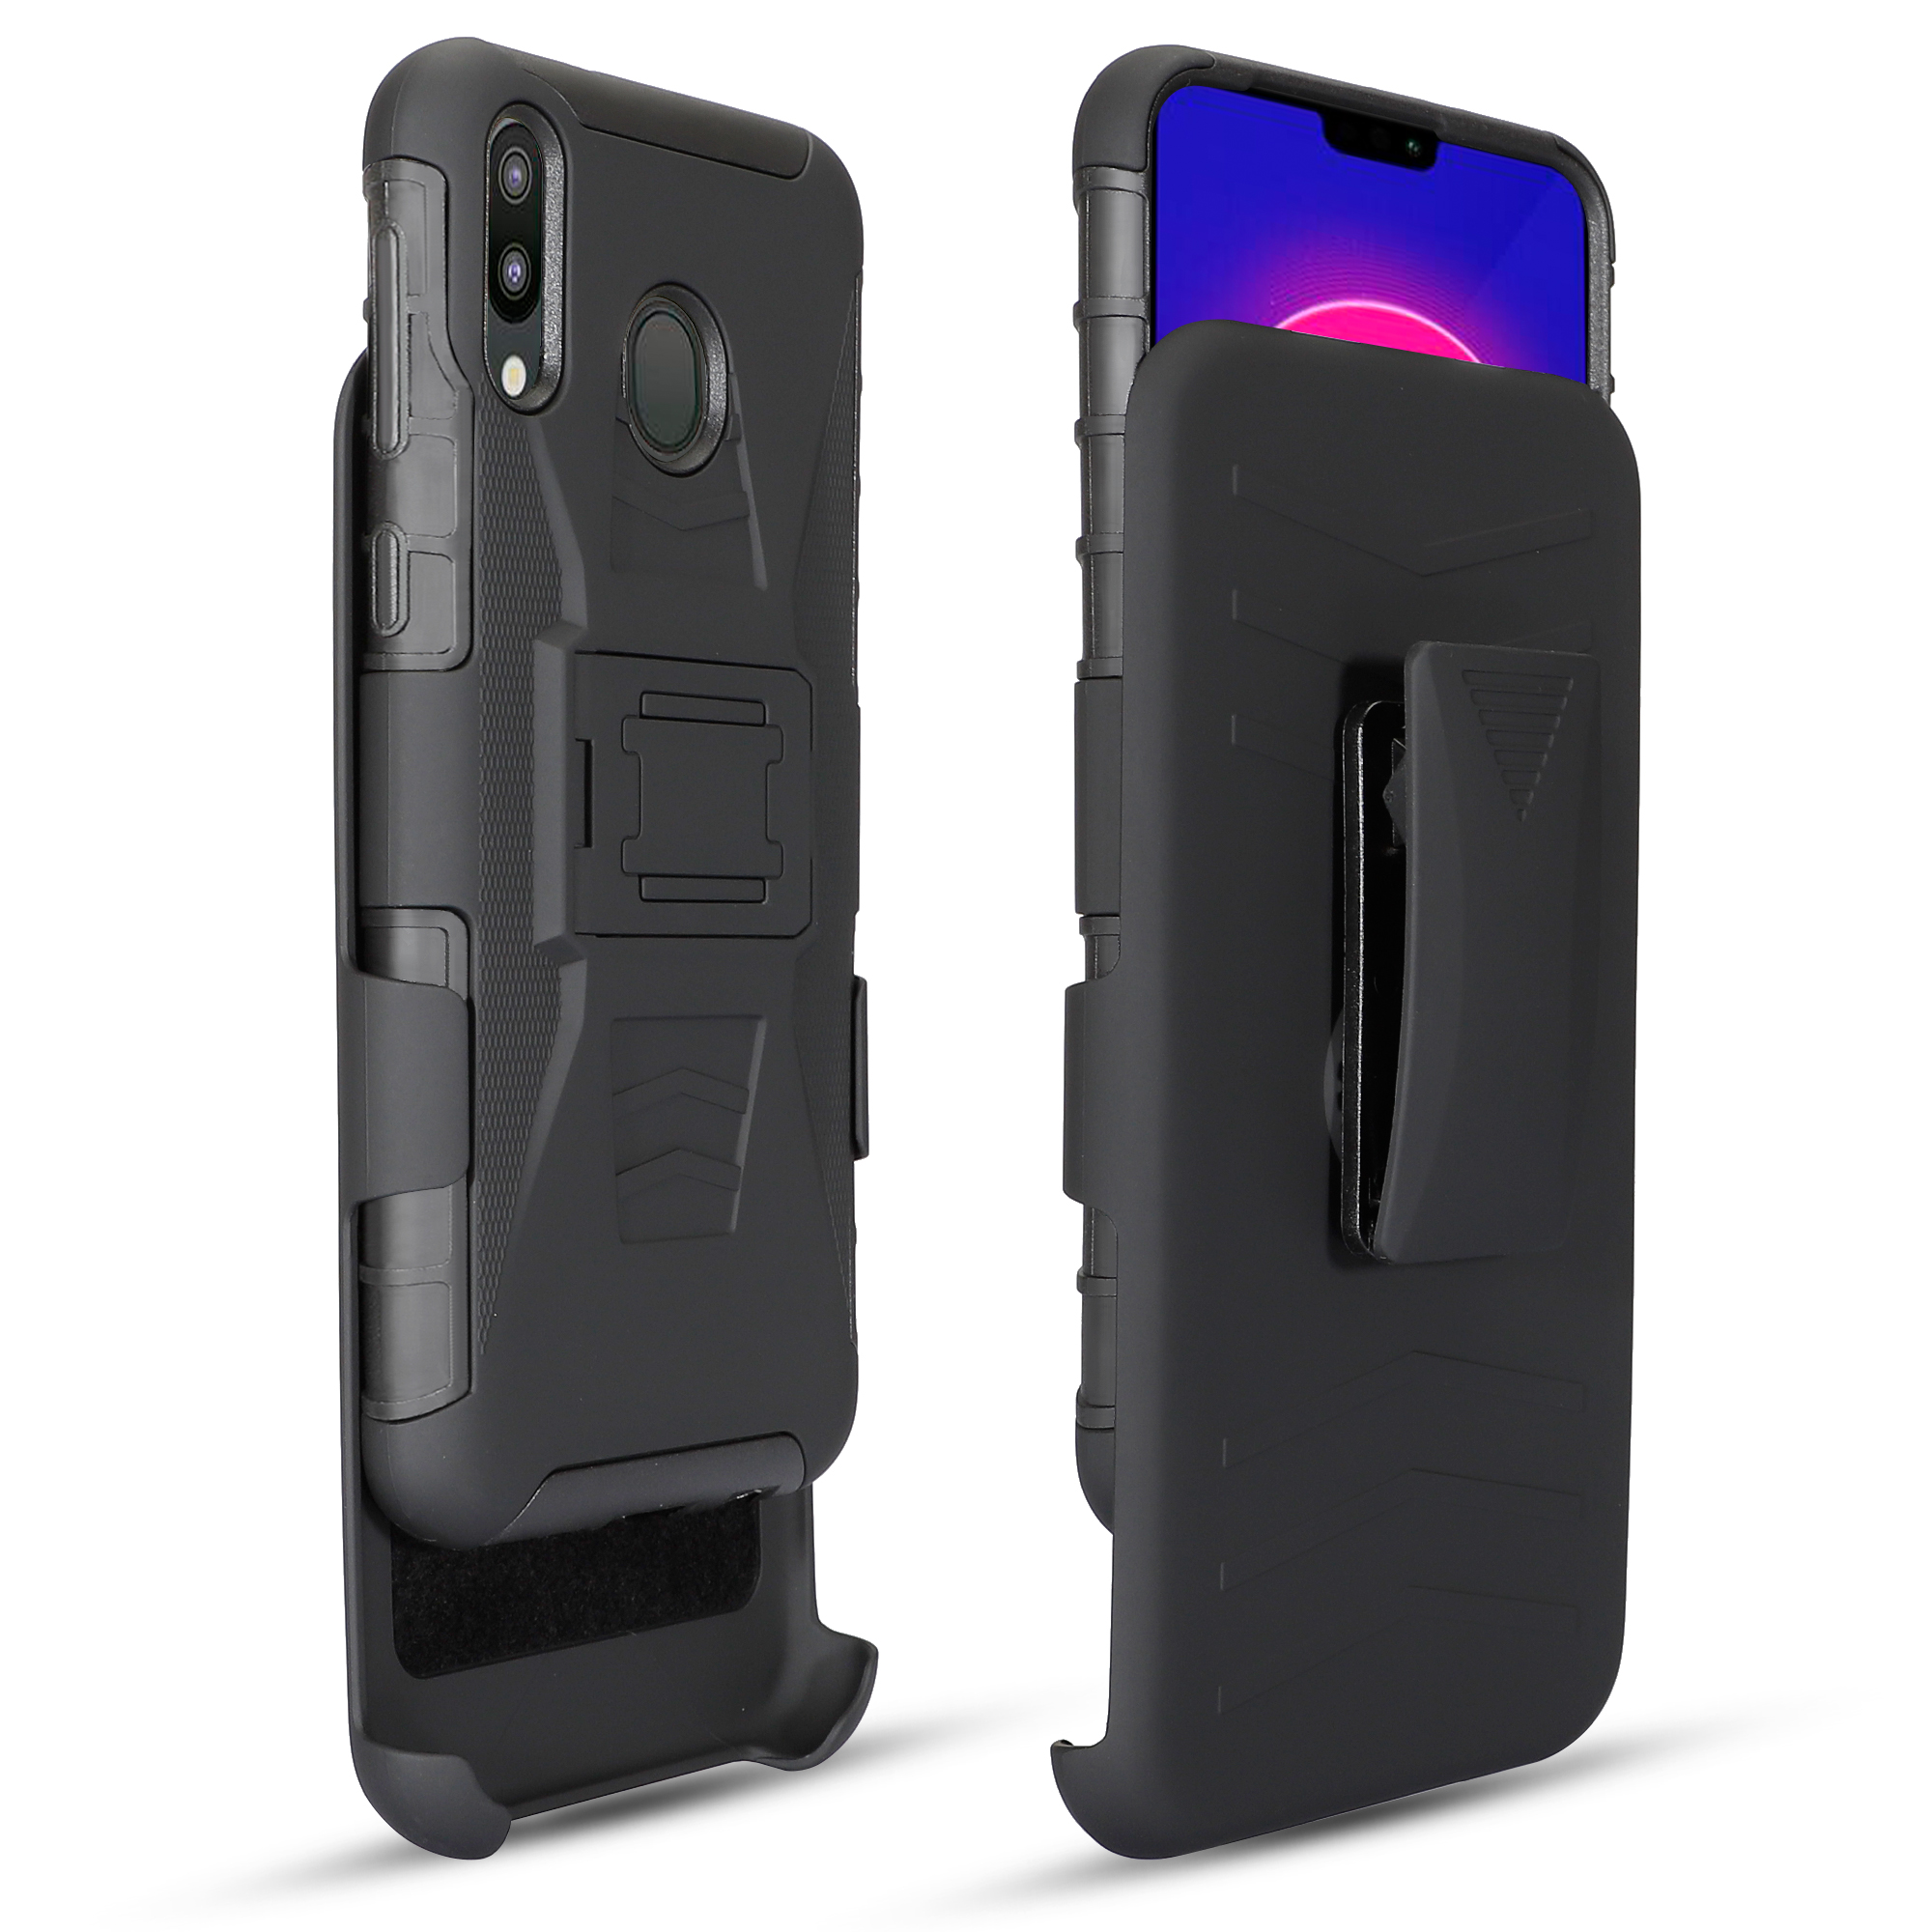 For <font><b>Samsung</b></font> Galaxy A5 A7 A8 A9 A10 A20 A30 A50 <font><b>A70</b></font> A80 A90 Rugged Holster Belt Clip <font><b>Case</b></font> M10 20 30 Cover Stand Guard Shell image